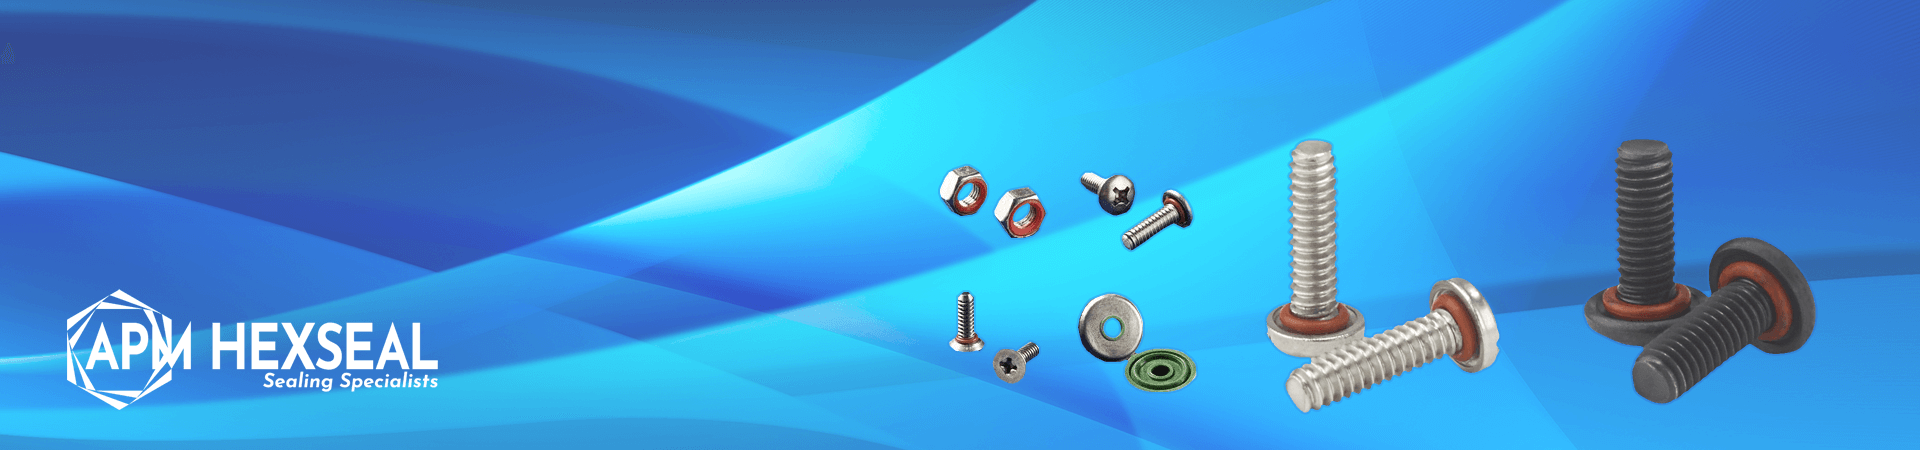 Manufacturers Representative for APM Hexseal in Florida